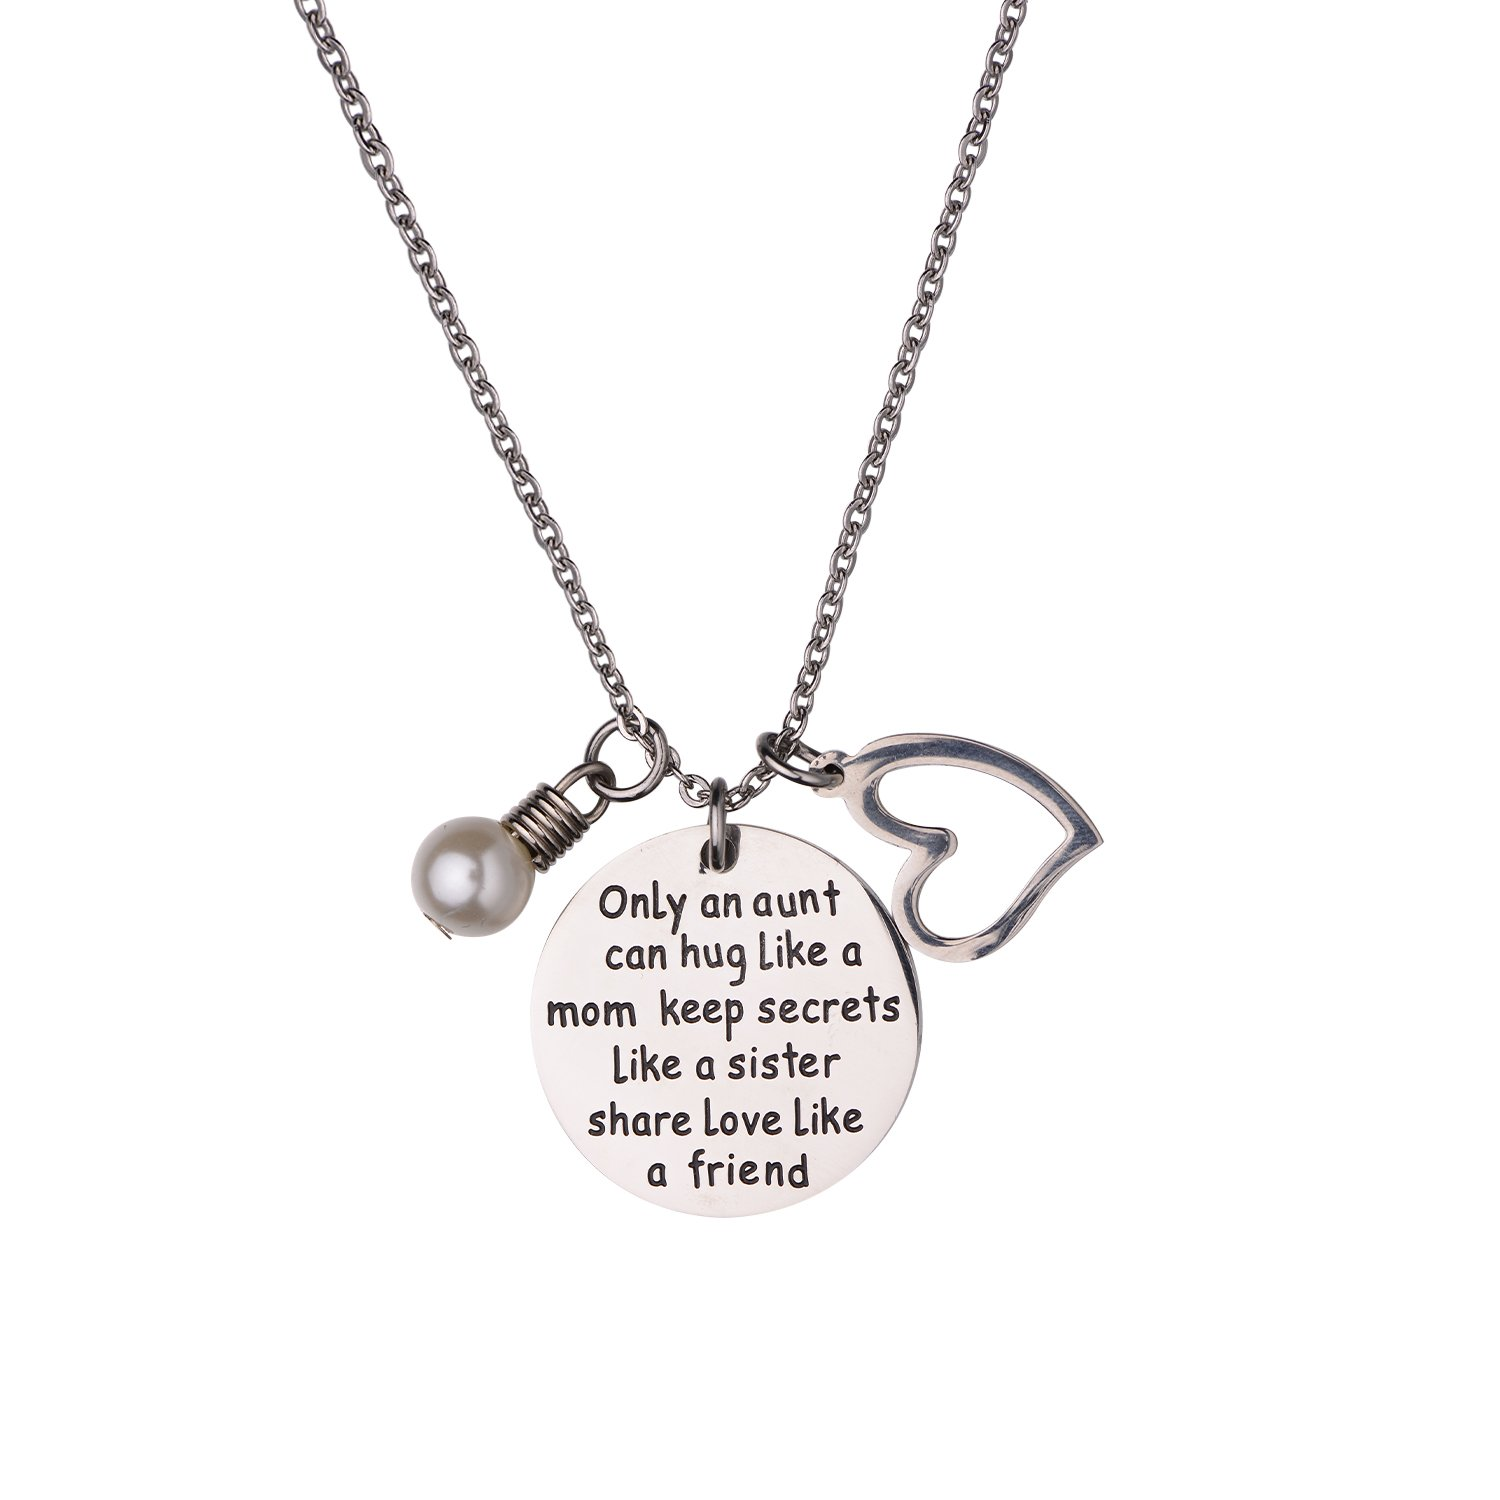 ashes my jewelry necklaces hold products for necklace cremation urn aunt that